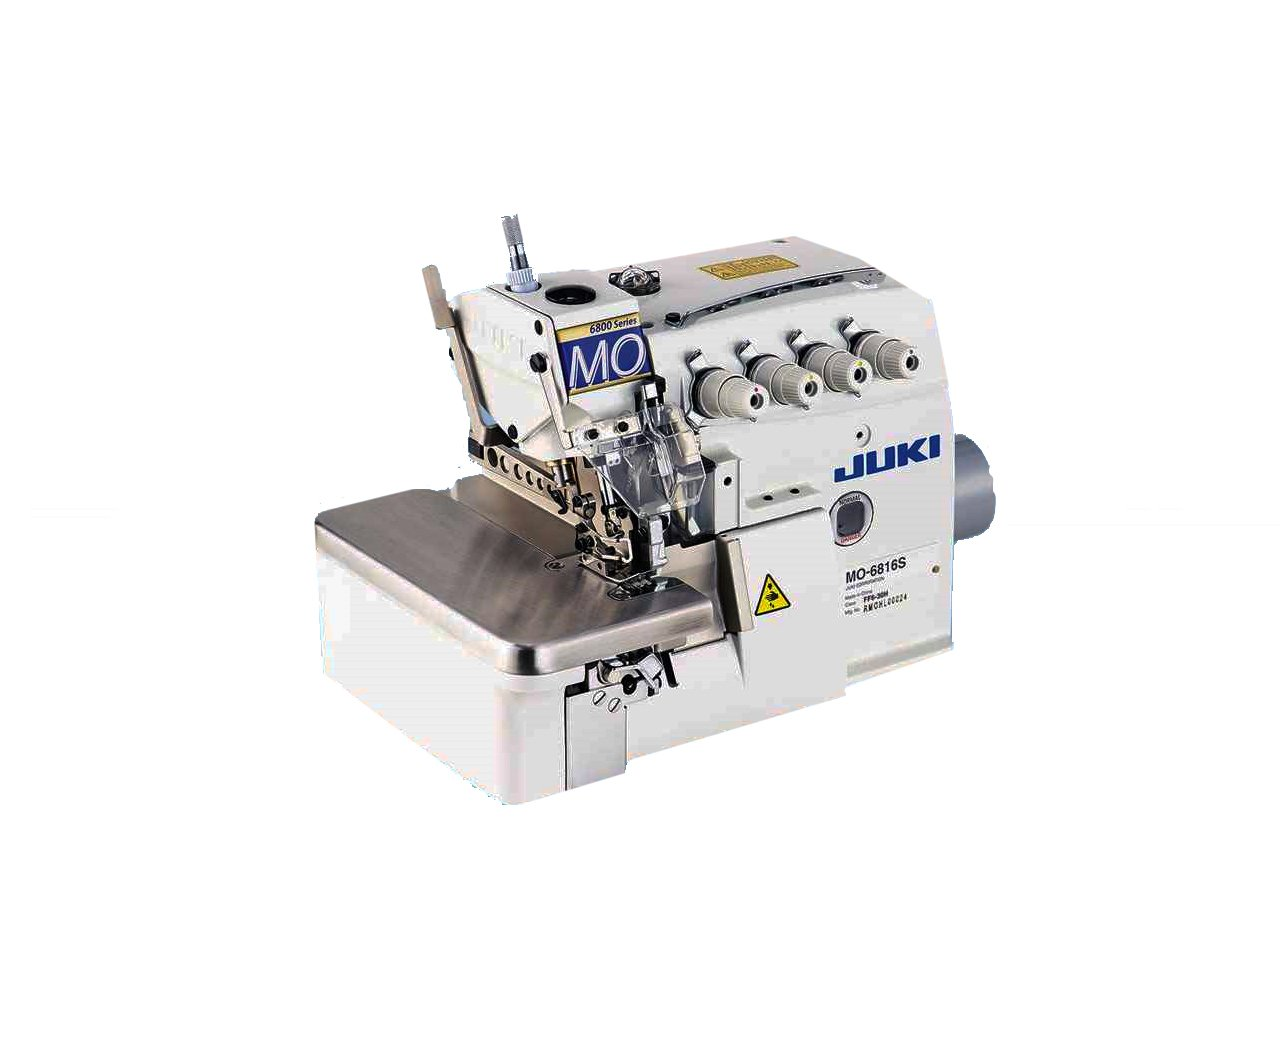 Juki MO 6800s Industrial Overlocking Overlocker Carpet Machine Sewing Perth WA Blackmore and Roy Western Australia Service